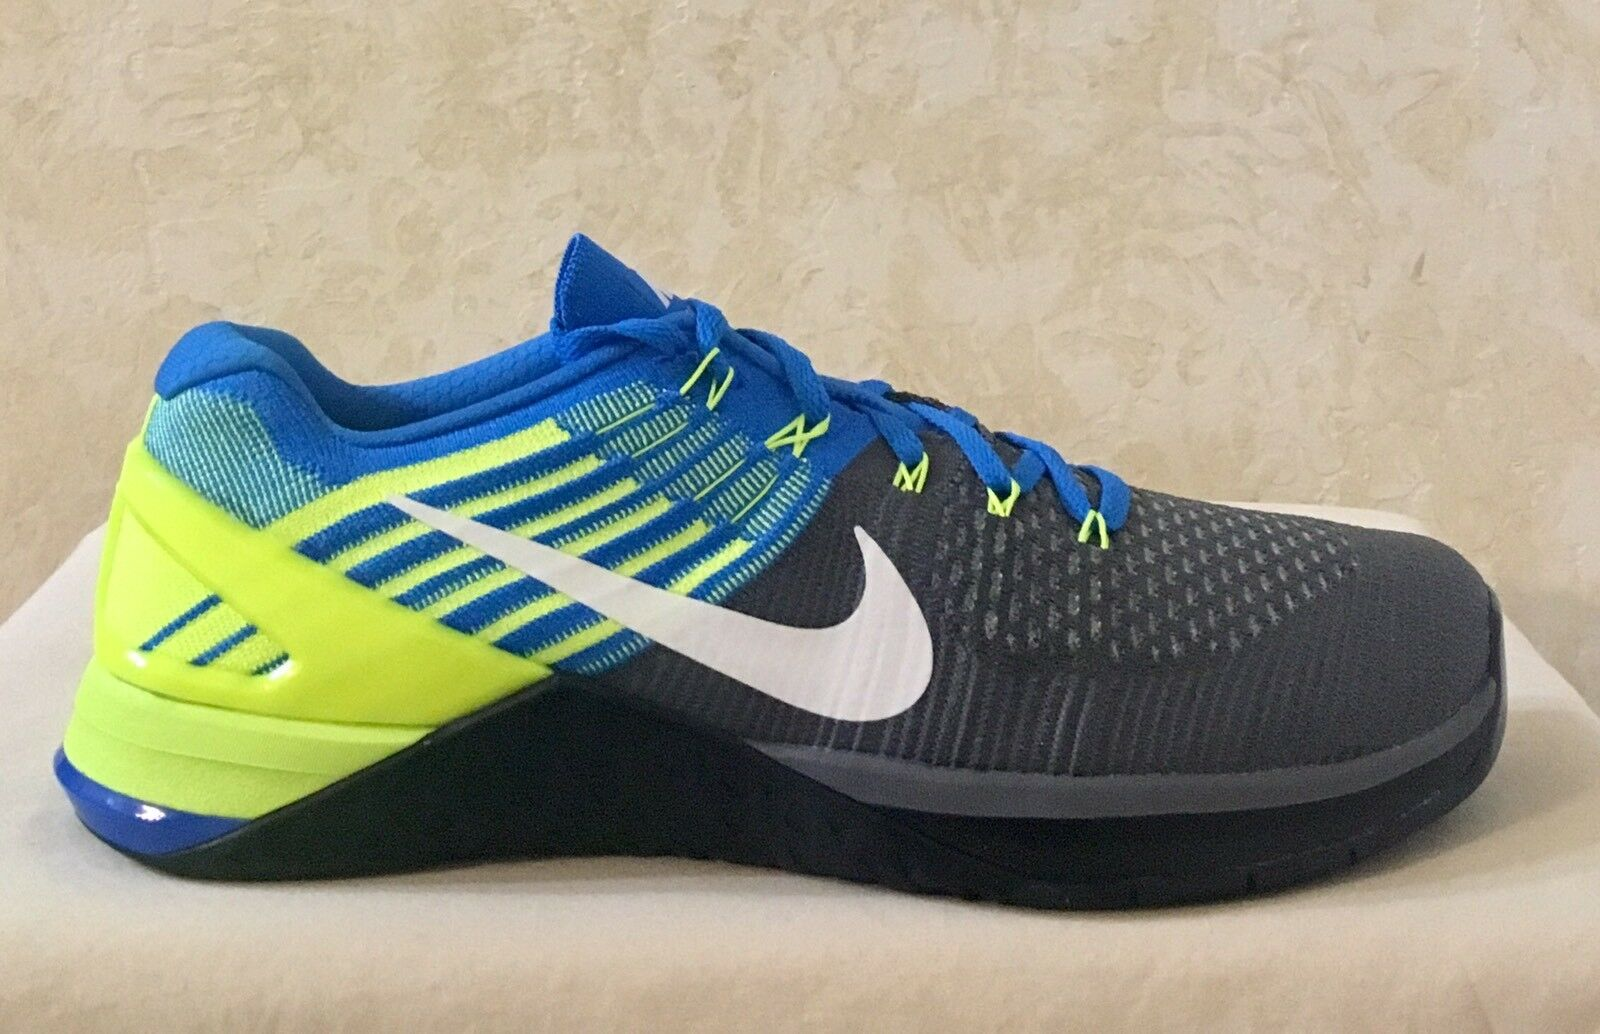 Seasonal price cuts, discount benefits Men Nike Metcon DSX Flyknit Training Athletic Shoes Gray/royal/green 852930-400